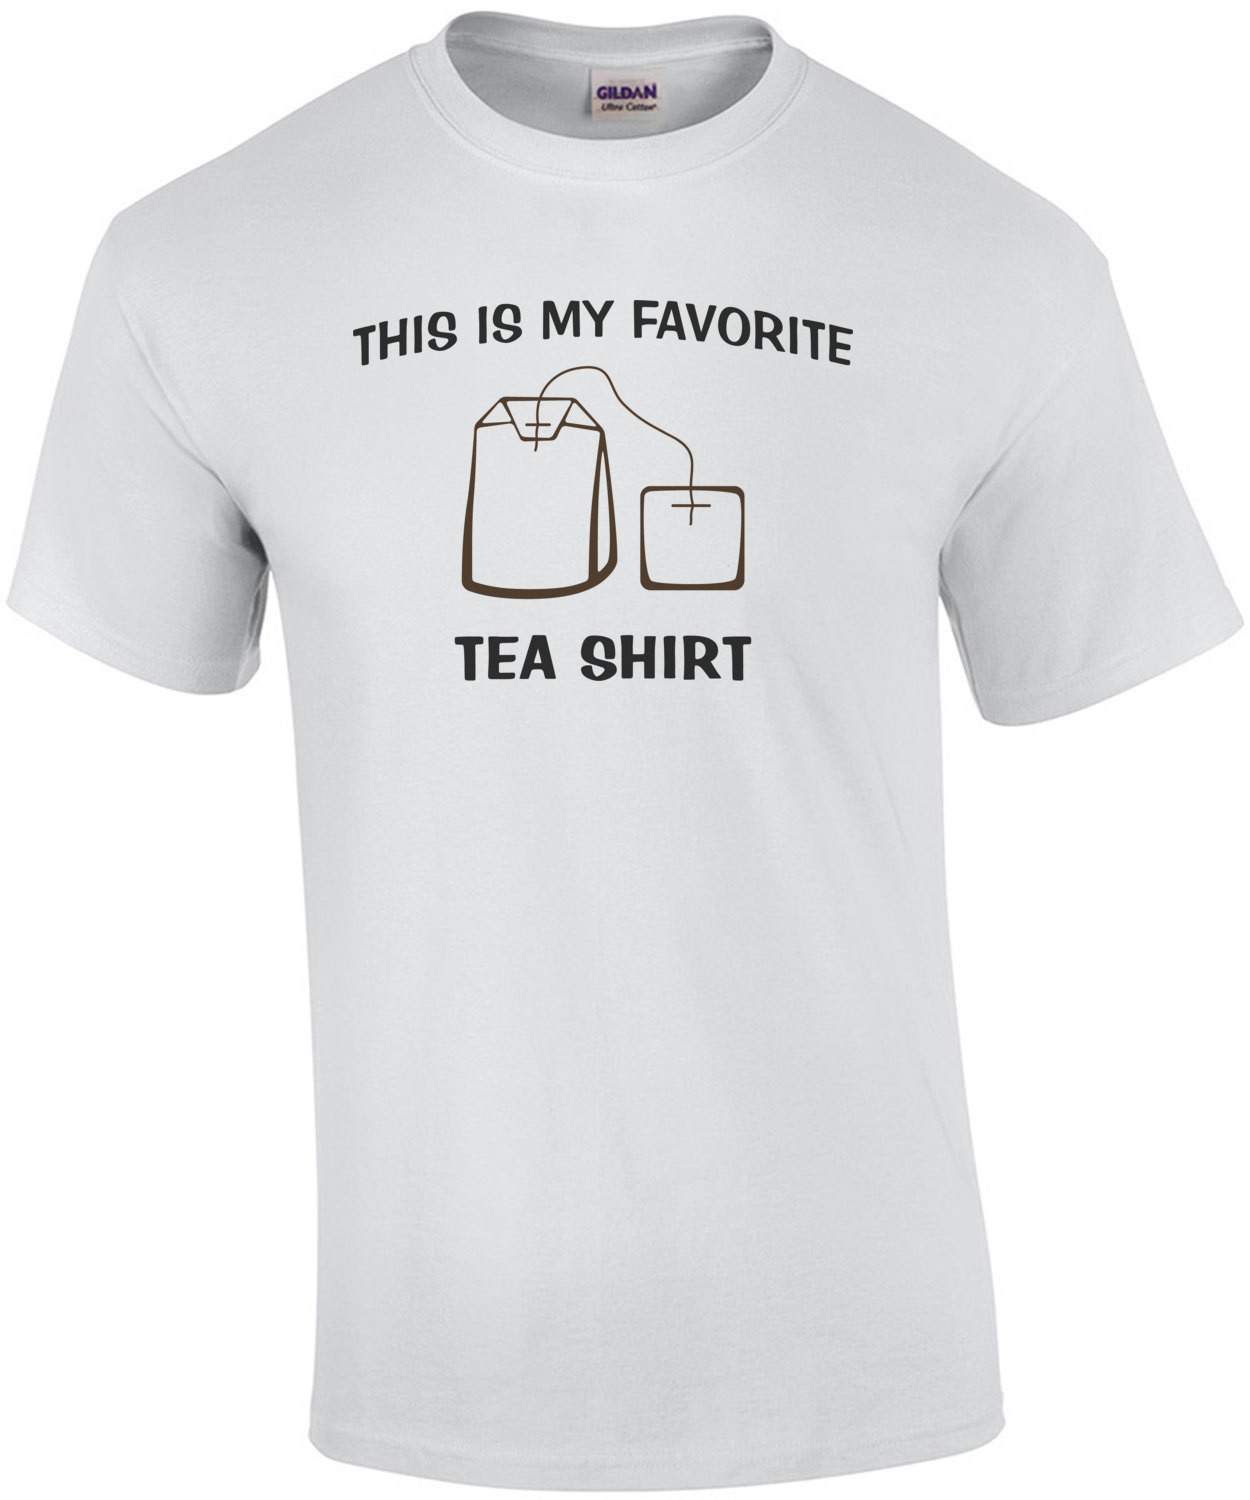 This Is My Favorite Tea Shirt - Funny Pun Shirt